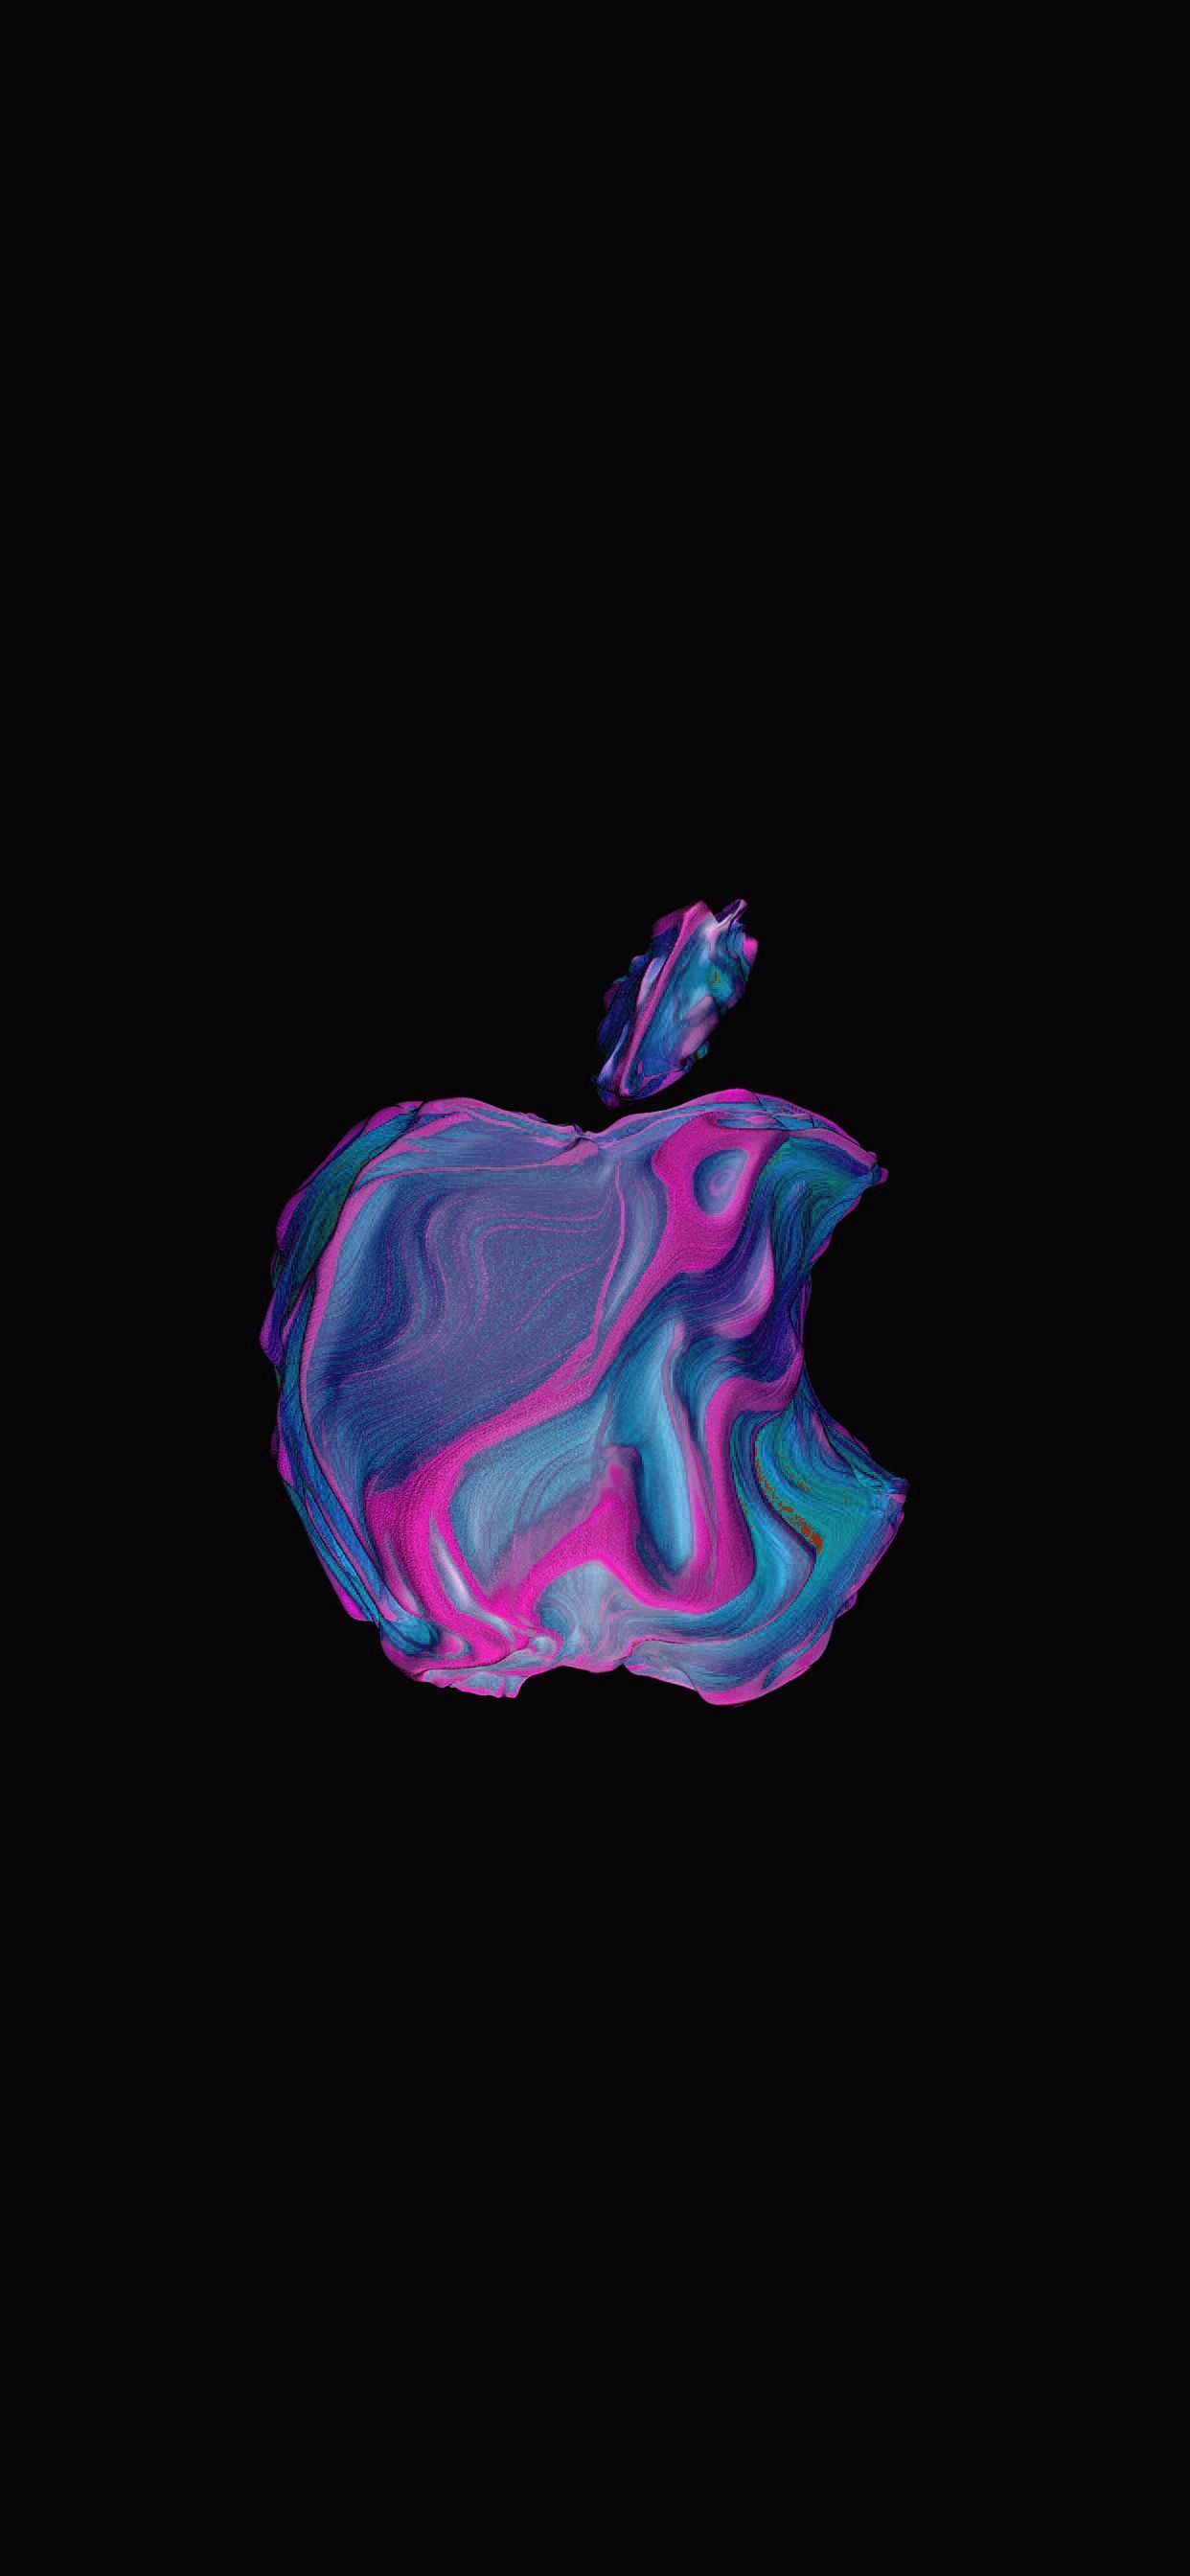 #applelogo #appleiphone #appleipad #iOS13 #iphonewallpaper #ios13wallpaper #applelogo #appleiphone #appleipad #iOS13 #iphonewallpaper #ios13wallpaper #applelogo #appleiphone #appleipad #iOS13 #iphonewallpaper #ios13wallpaper #applelogo #appleiphone #appleipad #iOS13 #iphonewallpaper #ios13wallpaper #applelogo #appleiphone #appleipad #iOS13 #iphonewallpaper #ios13wallpaper #applelogo #appleiphone #appleipad #iOS13 #iphonewallpaper #ios13wallpaper #applelogo #appleiphone #appleipad #iOS13 #iphonew #ios13wallpaper